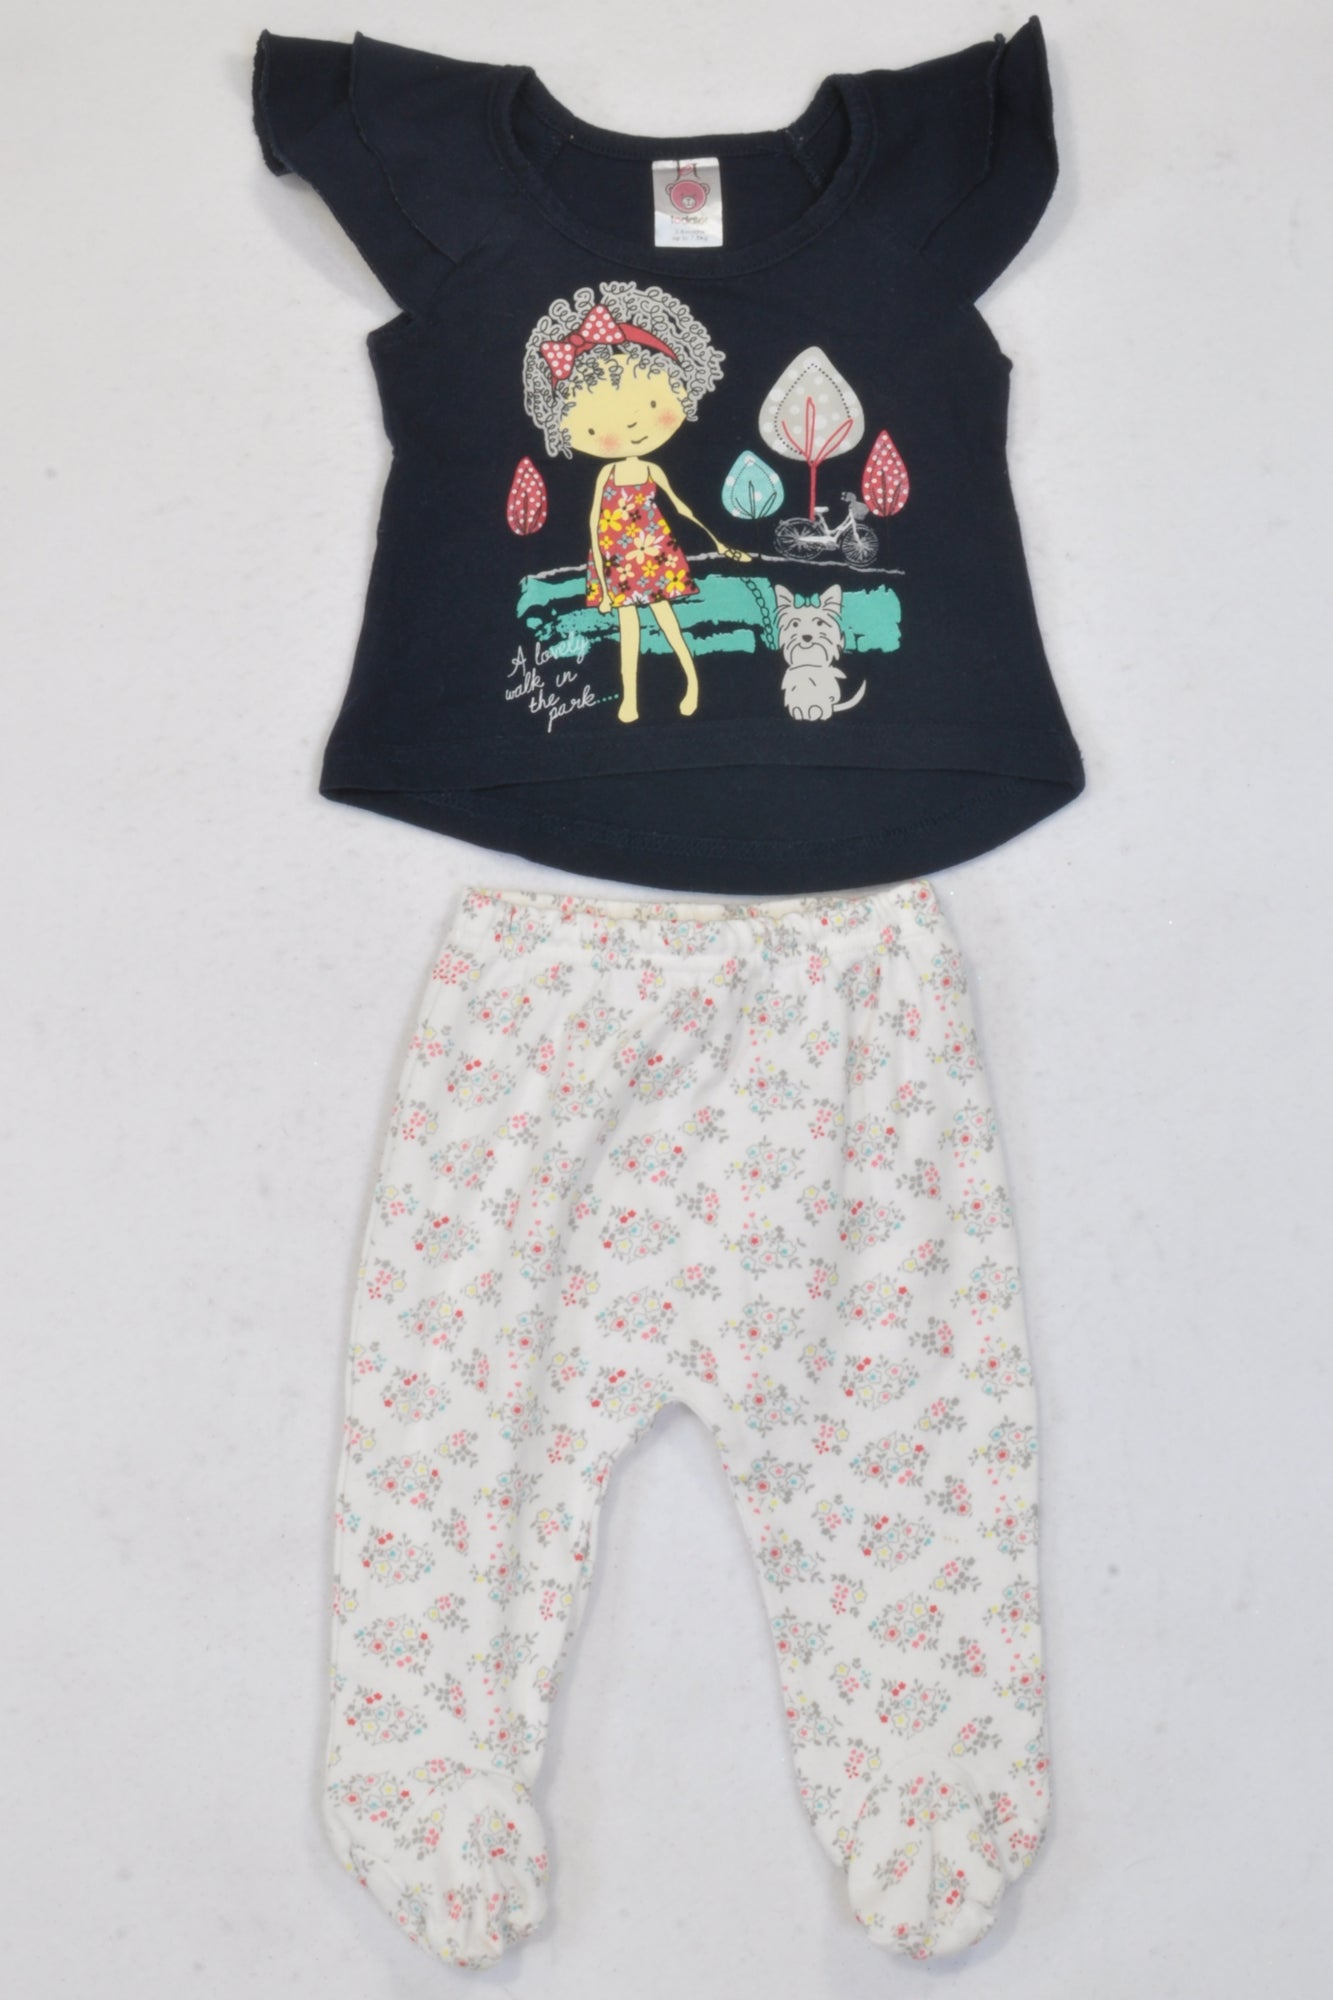 Jet Navy Girl & Dog Outfit Girls 3-6 months